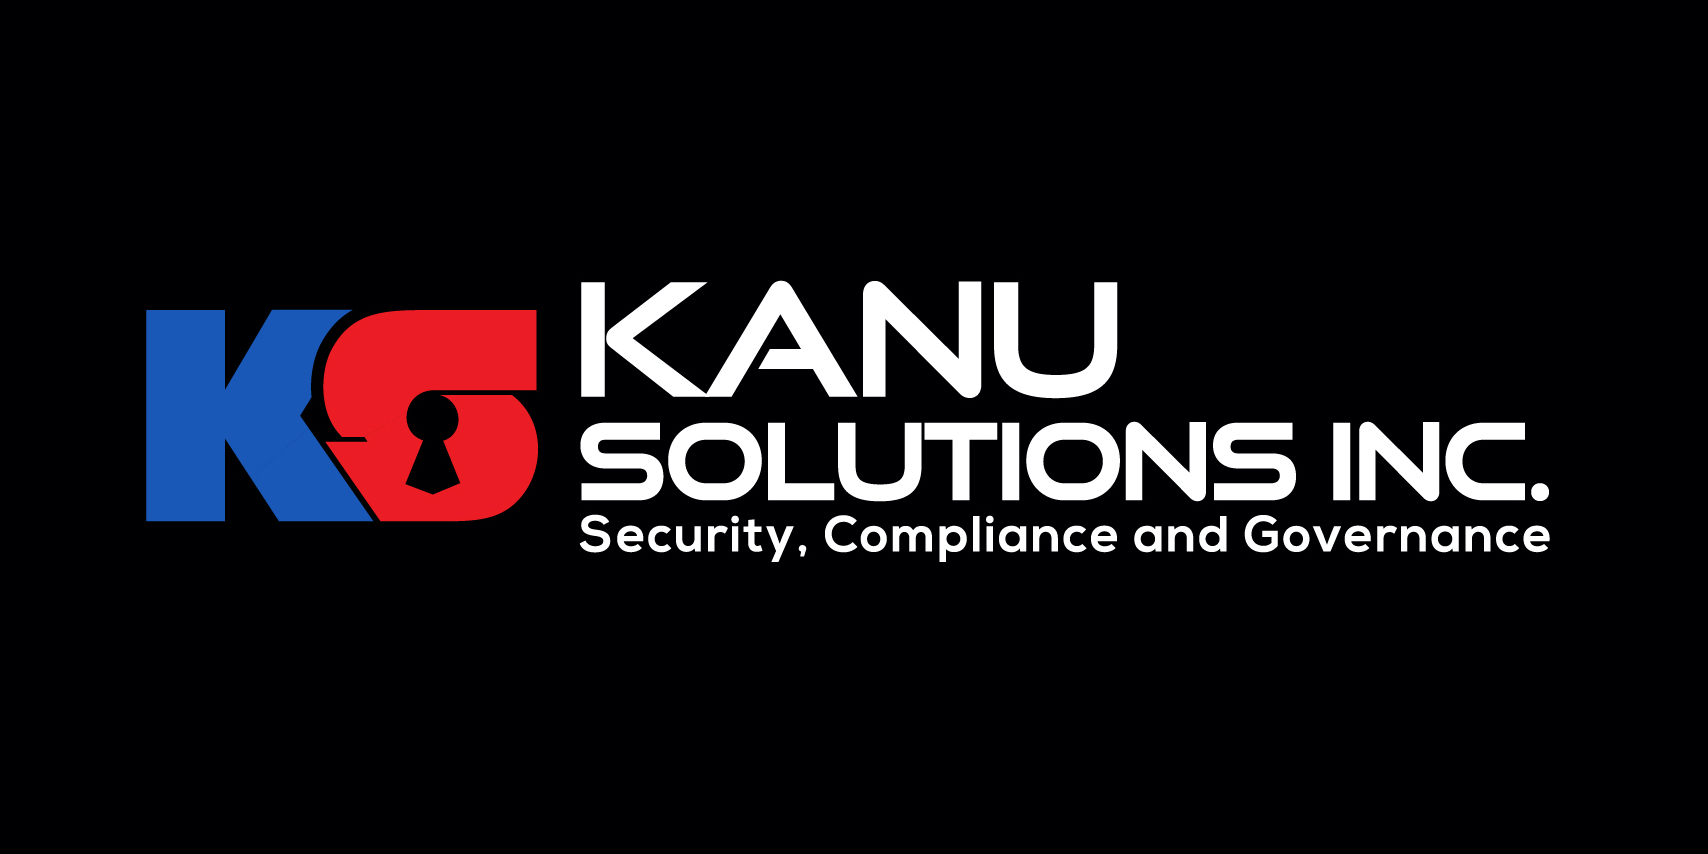 Kanu Solutions Cropped 2x4